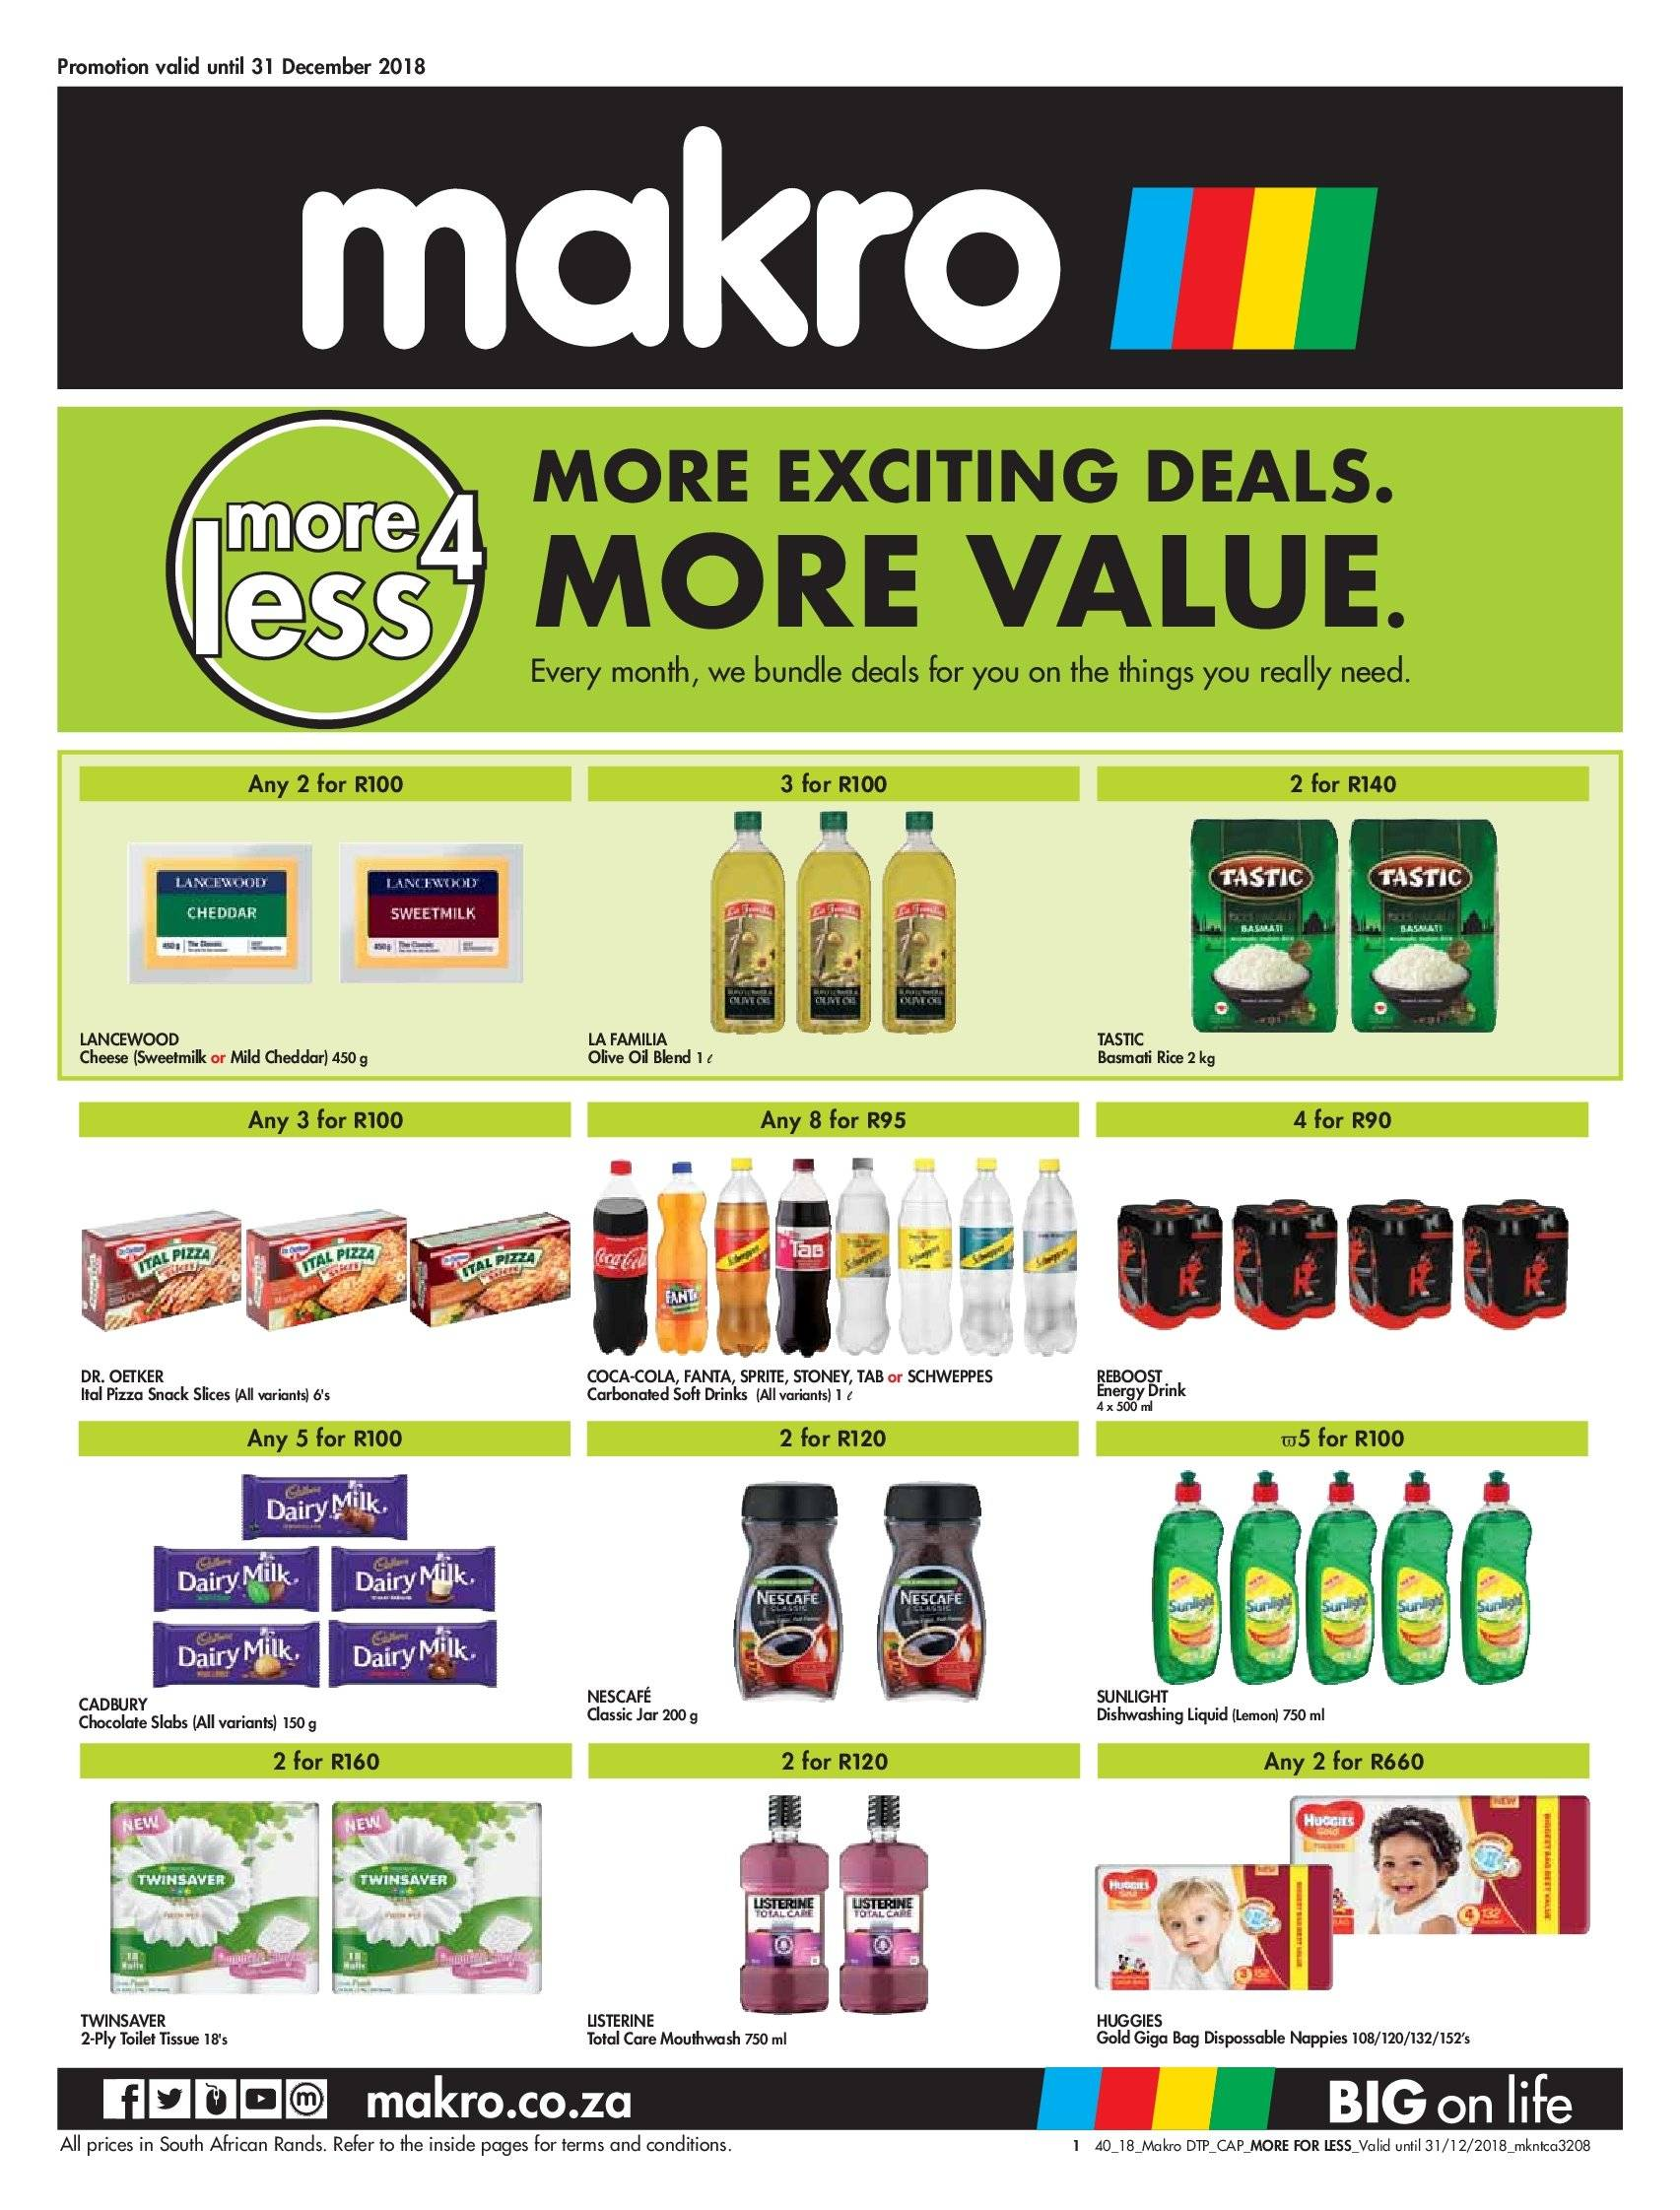 Makro special - 11.02.2018 - 12.31.2018 - Sales products - bag, basmati rice, bundle, cap, coca-cola, mild cheddar, milk, rice, schweppes, sprite, toilet, huggies, jar, pizza, cheddar, olive oil, chocolate. Page 1.